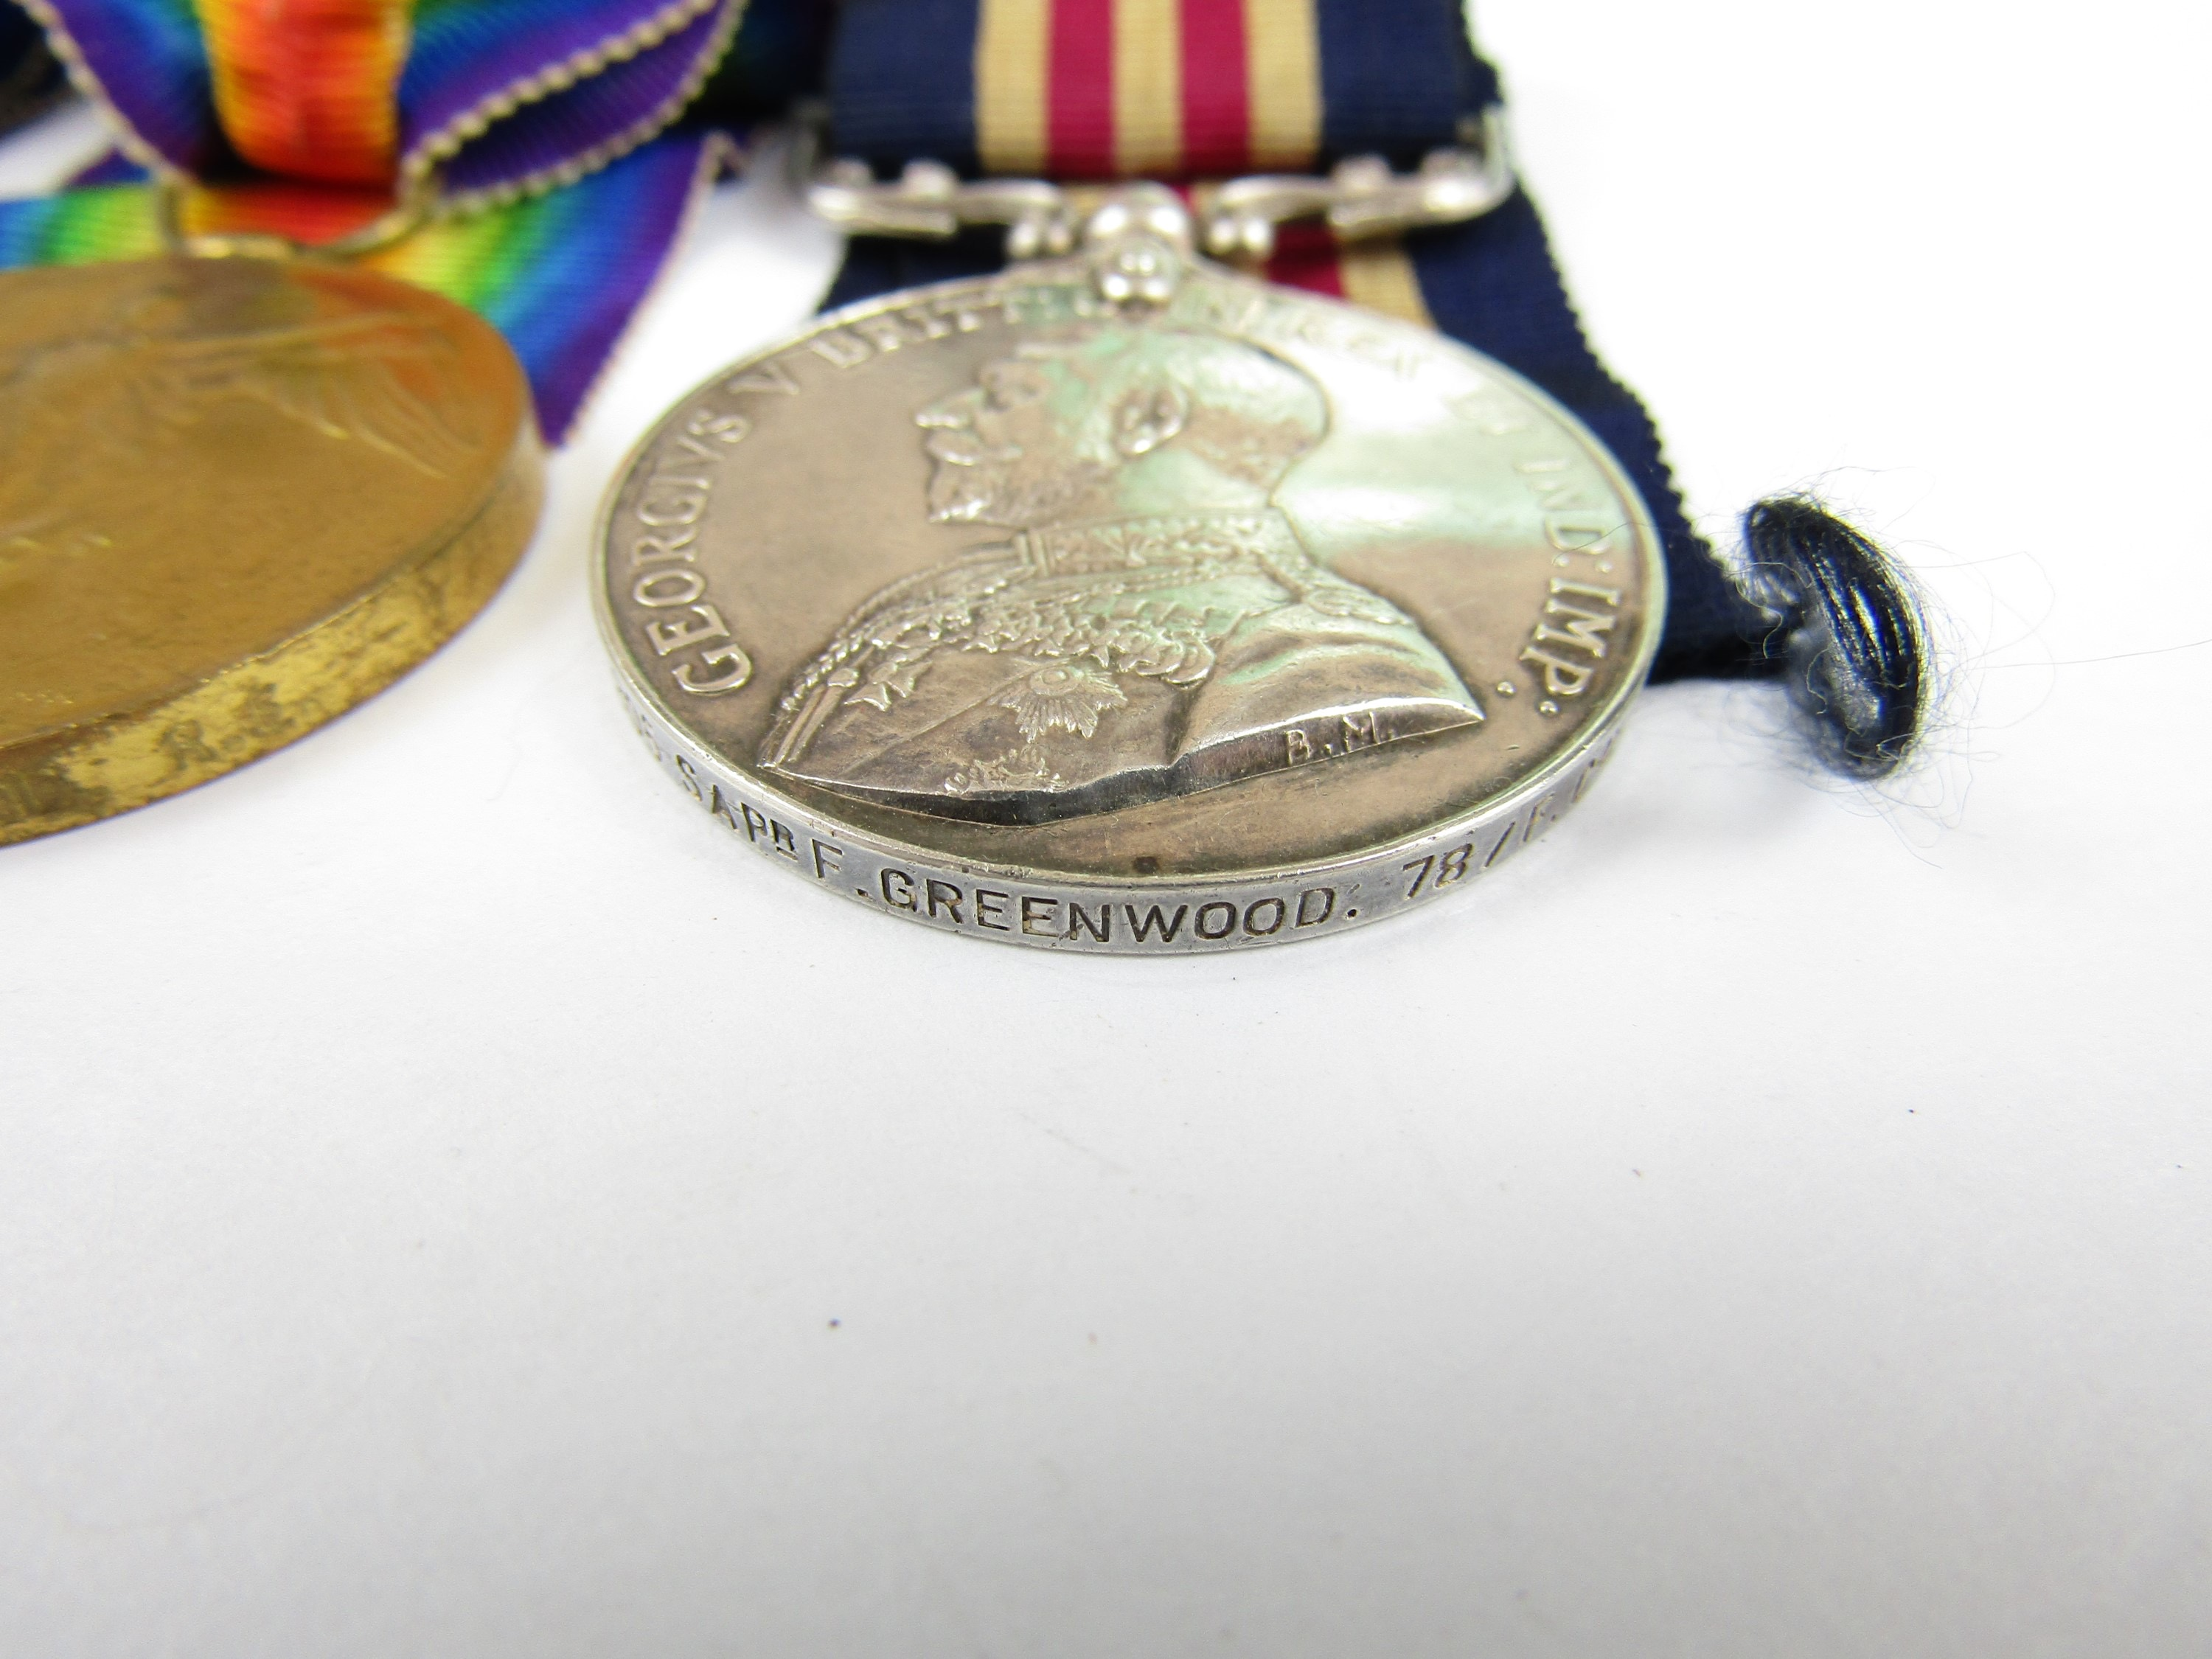 Lot 6 - A Military medal, 1914-15 Star and Victory Medals to 101805 Sapper F Greenwood, 78th Field